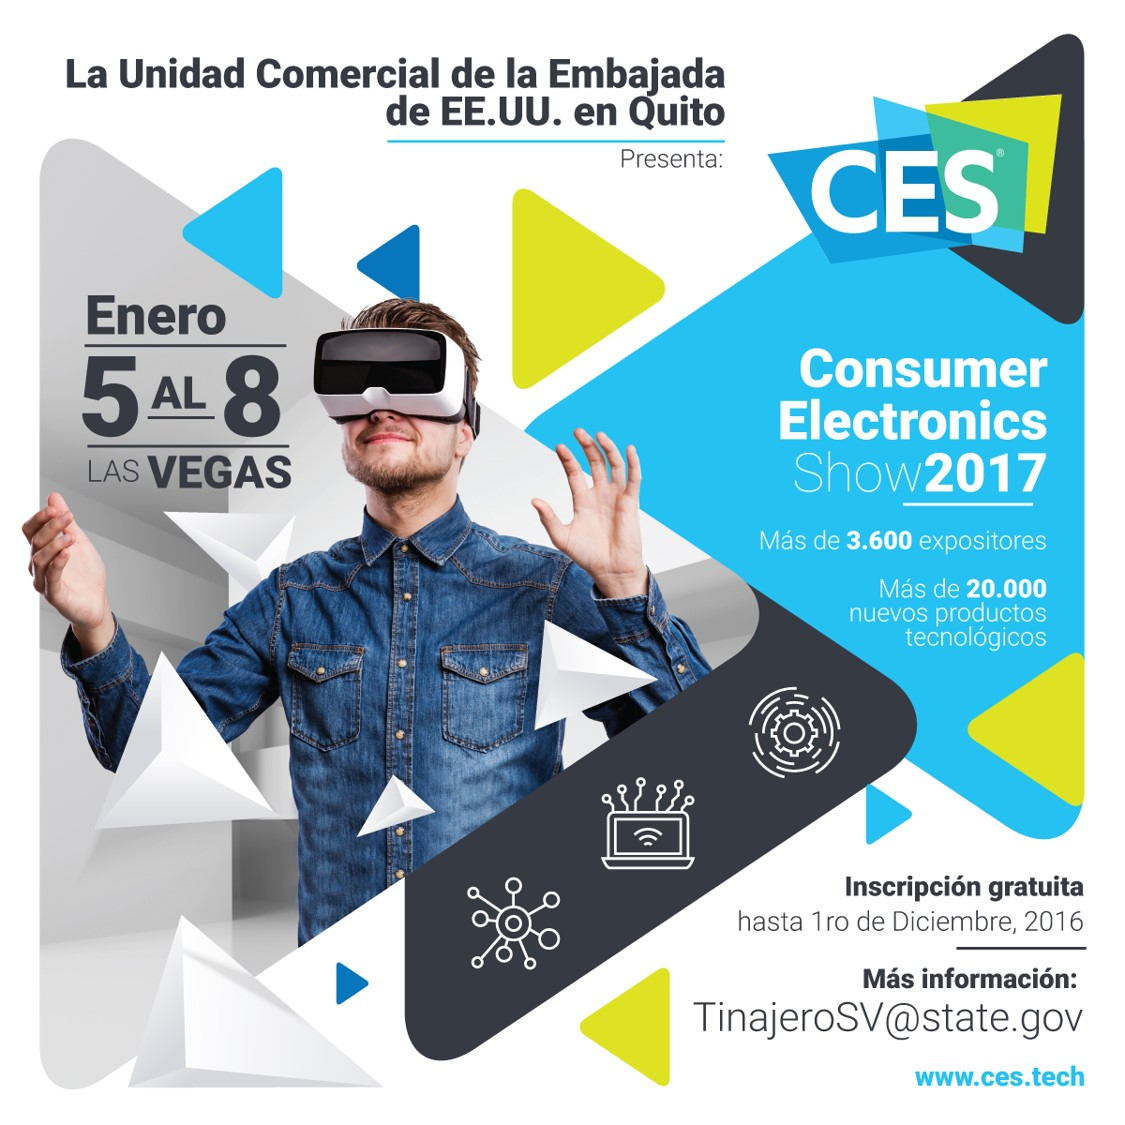 CONSUMER ELECTRONICS SHOW 2017